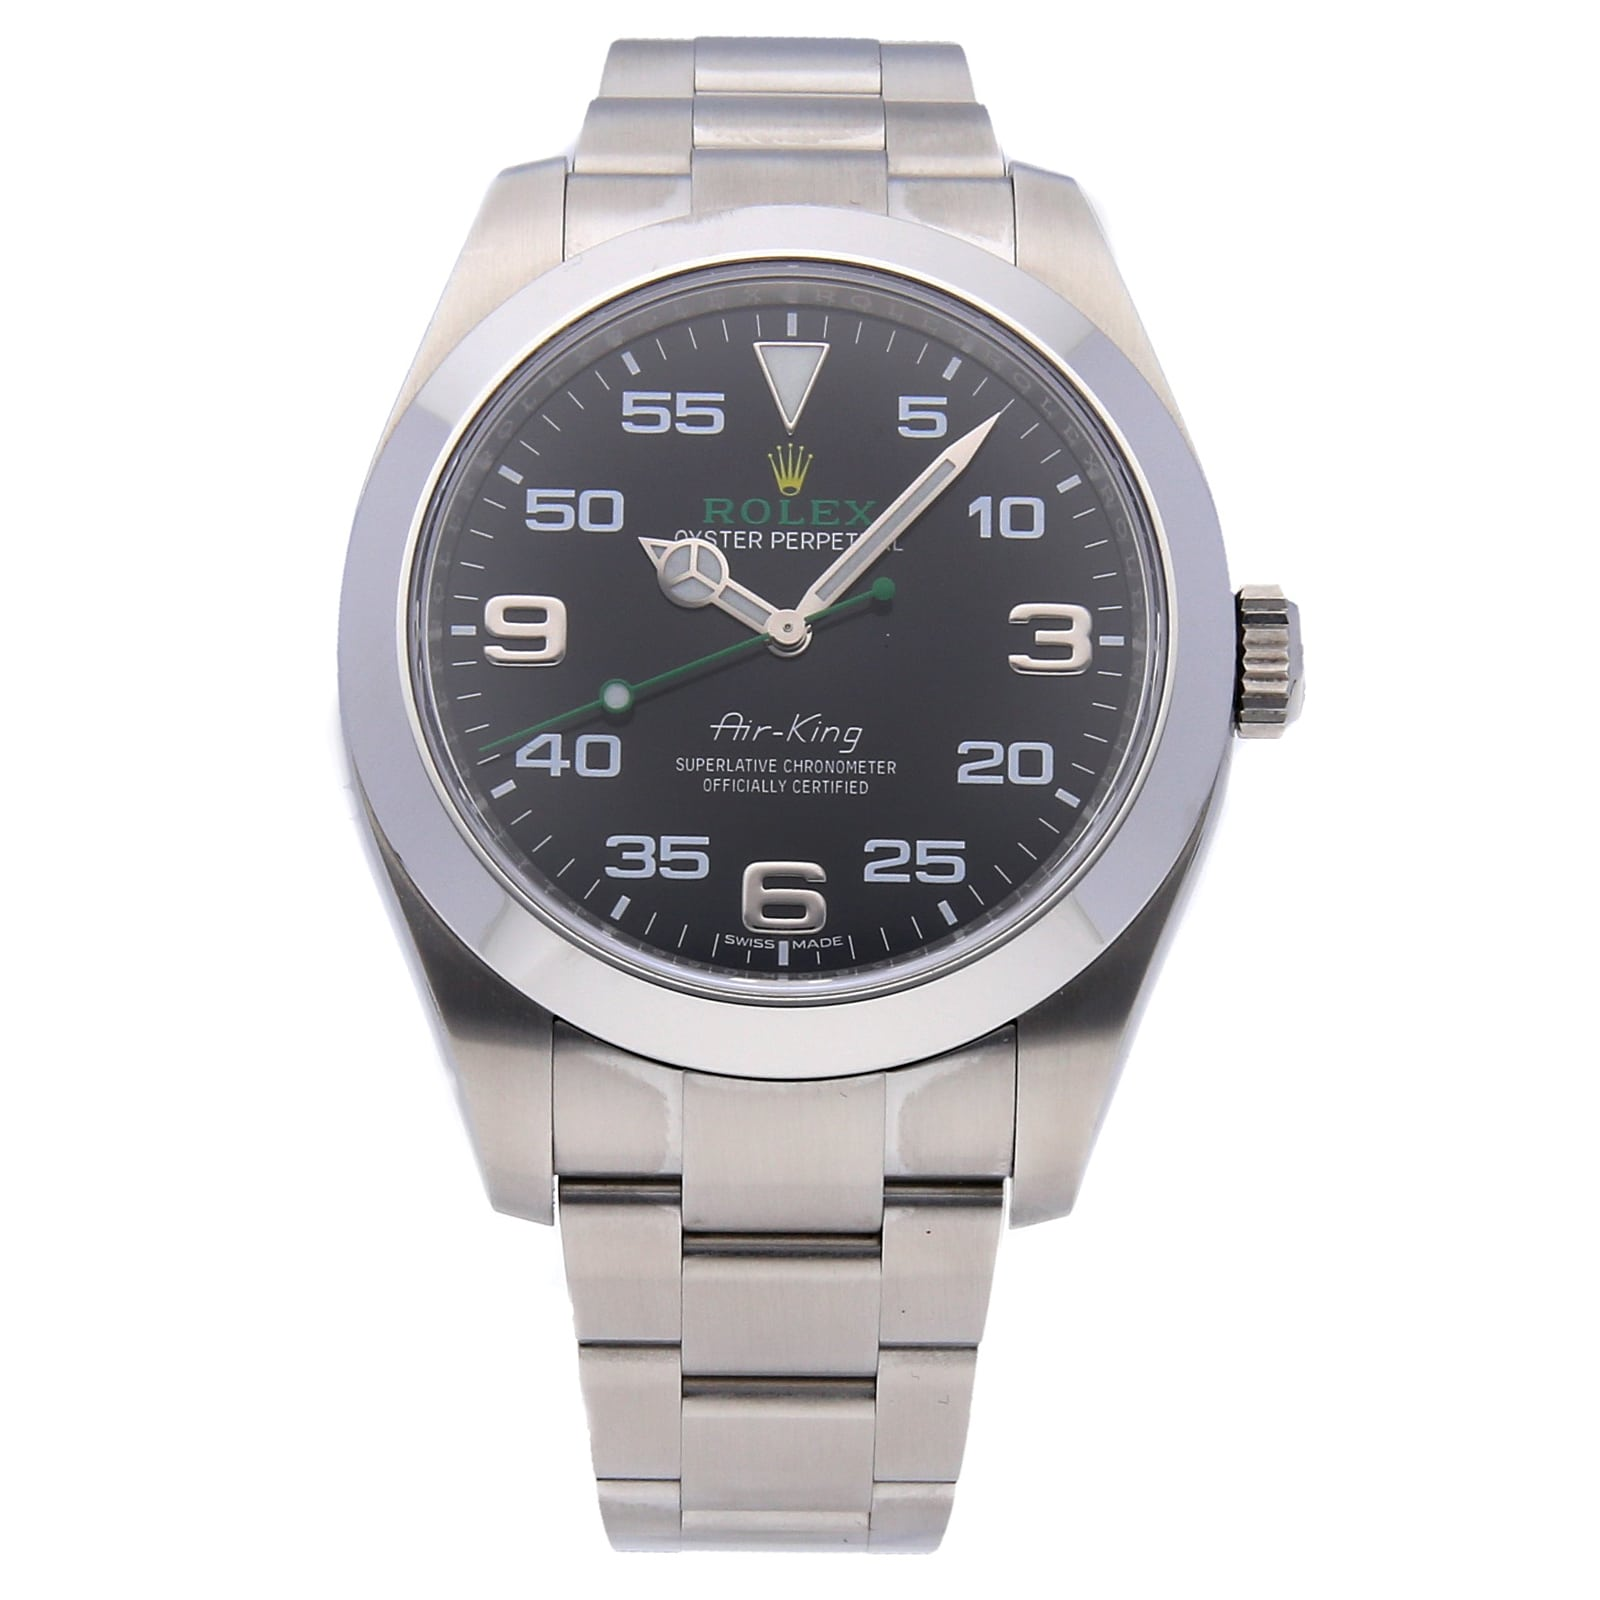 WatchBox Timepiece Rolex Air King